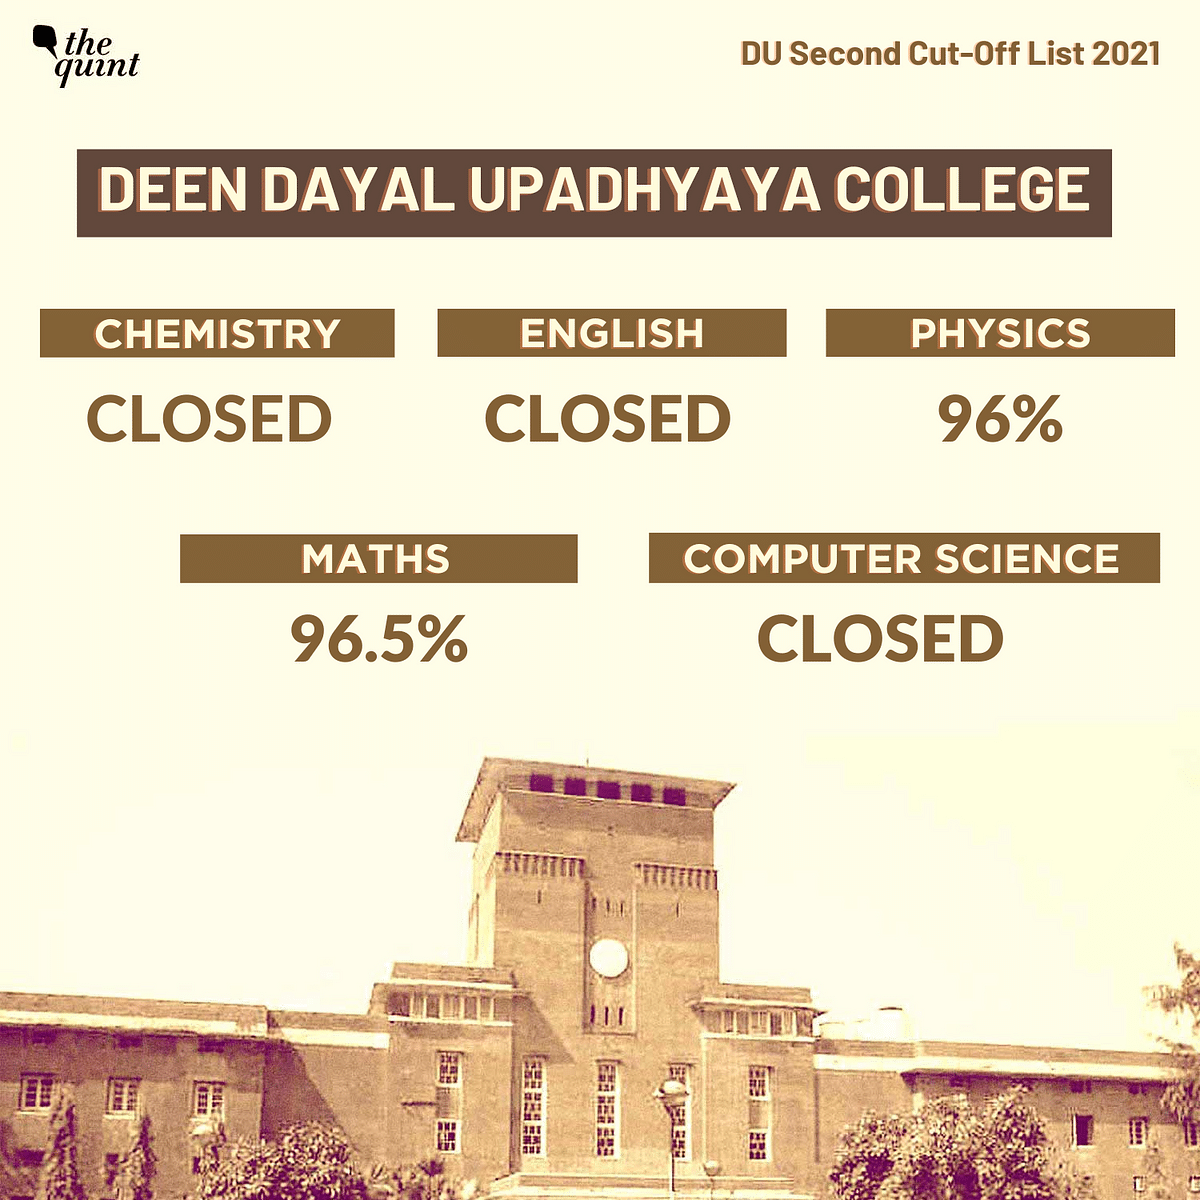 """<div class=""""paragraphs""""><p>Deen Dayal Upadhyaya closes&nbsp;closes admissions for english, chemistry, computers, life science, and B.A. programme courses.</p></div>"""